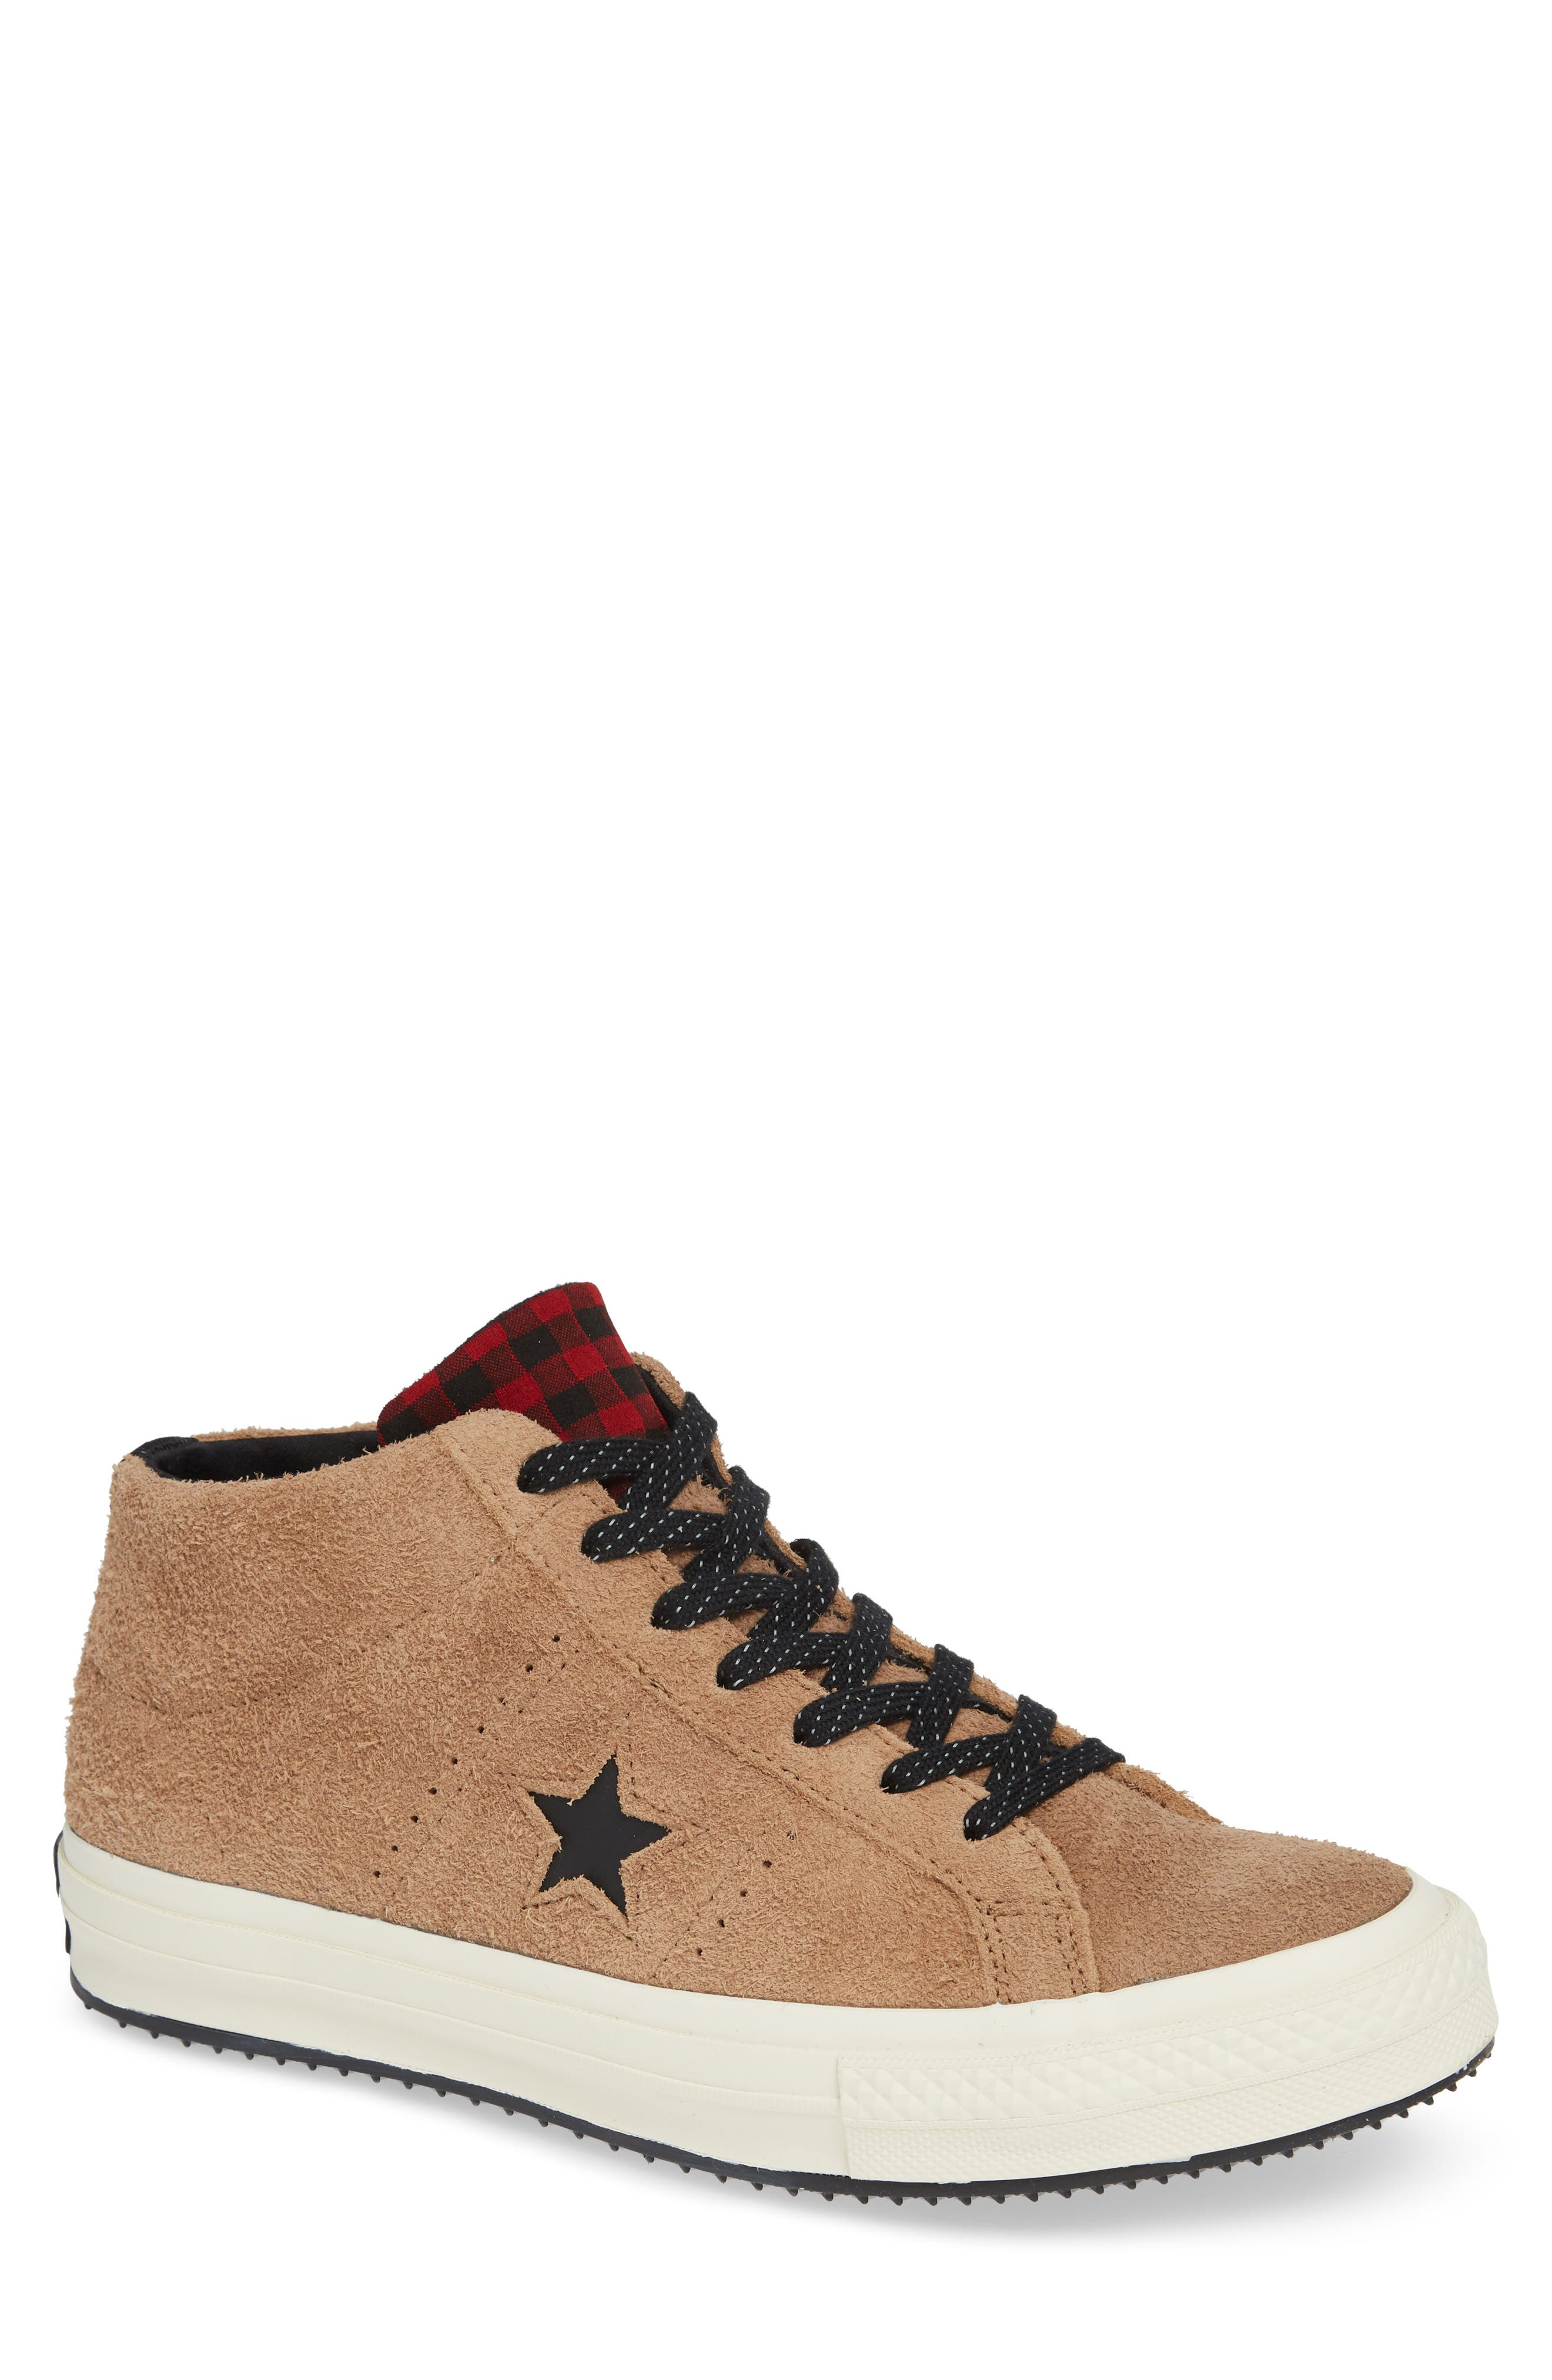 One Star Climate Counter Mid Top Sneaker,                             Main thumbnail 1, color,                             FIELD SURPLUS SUEDE